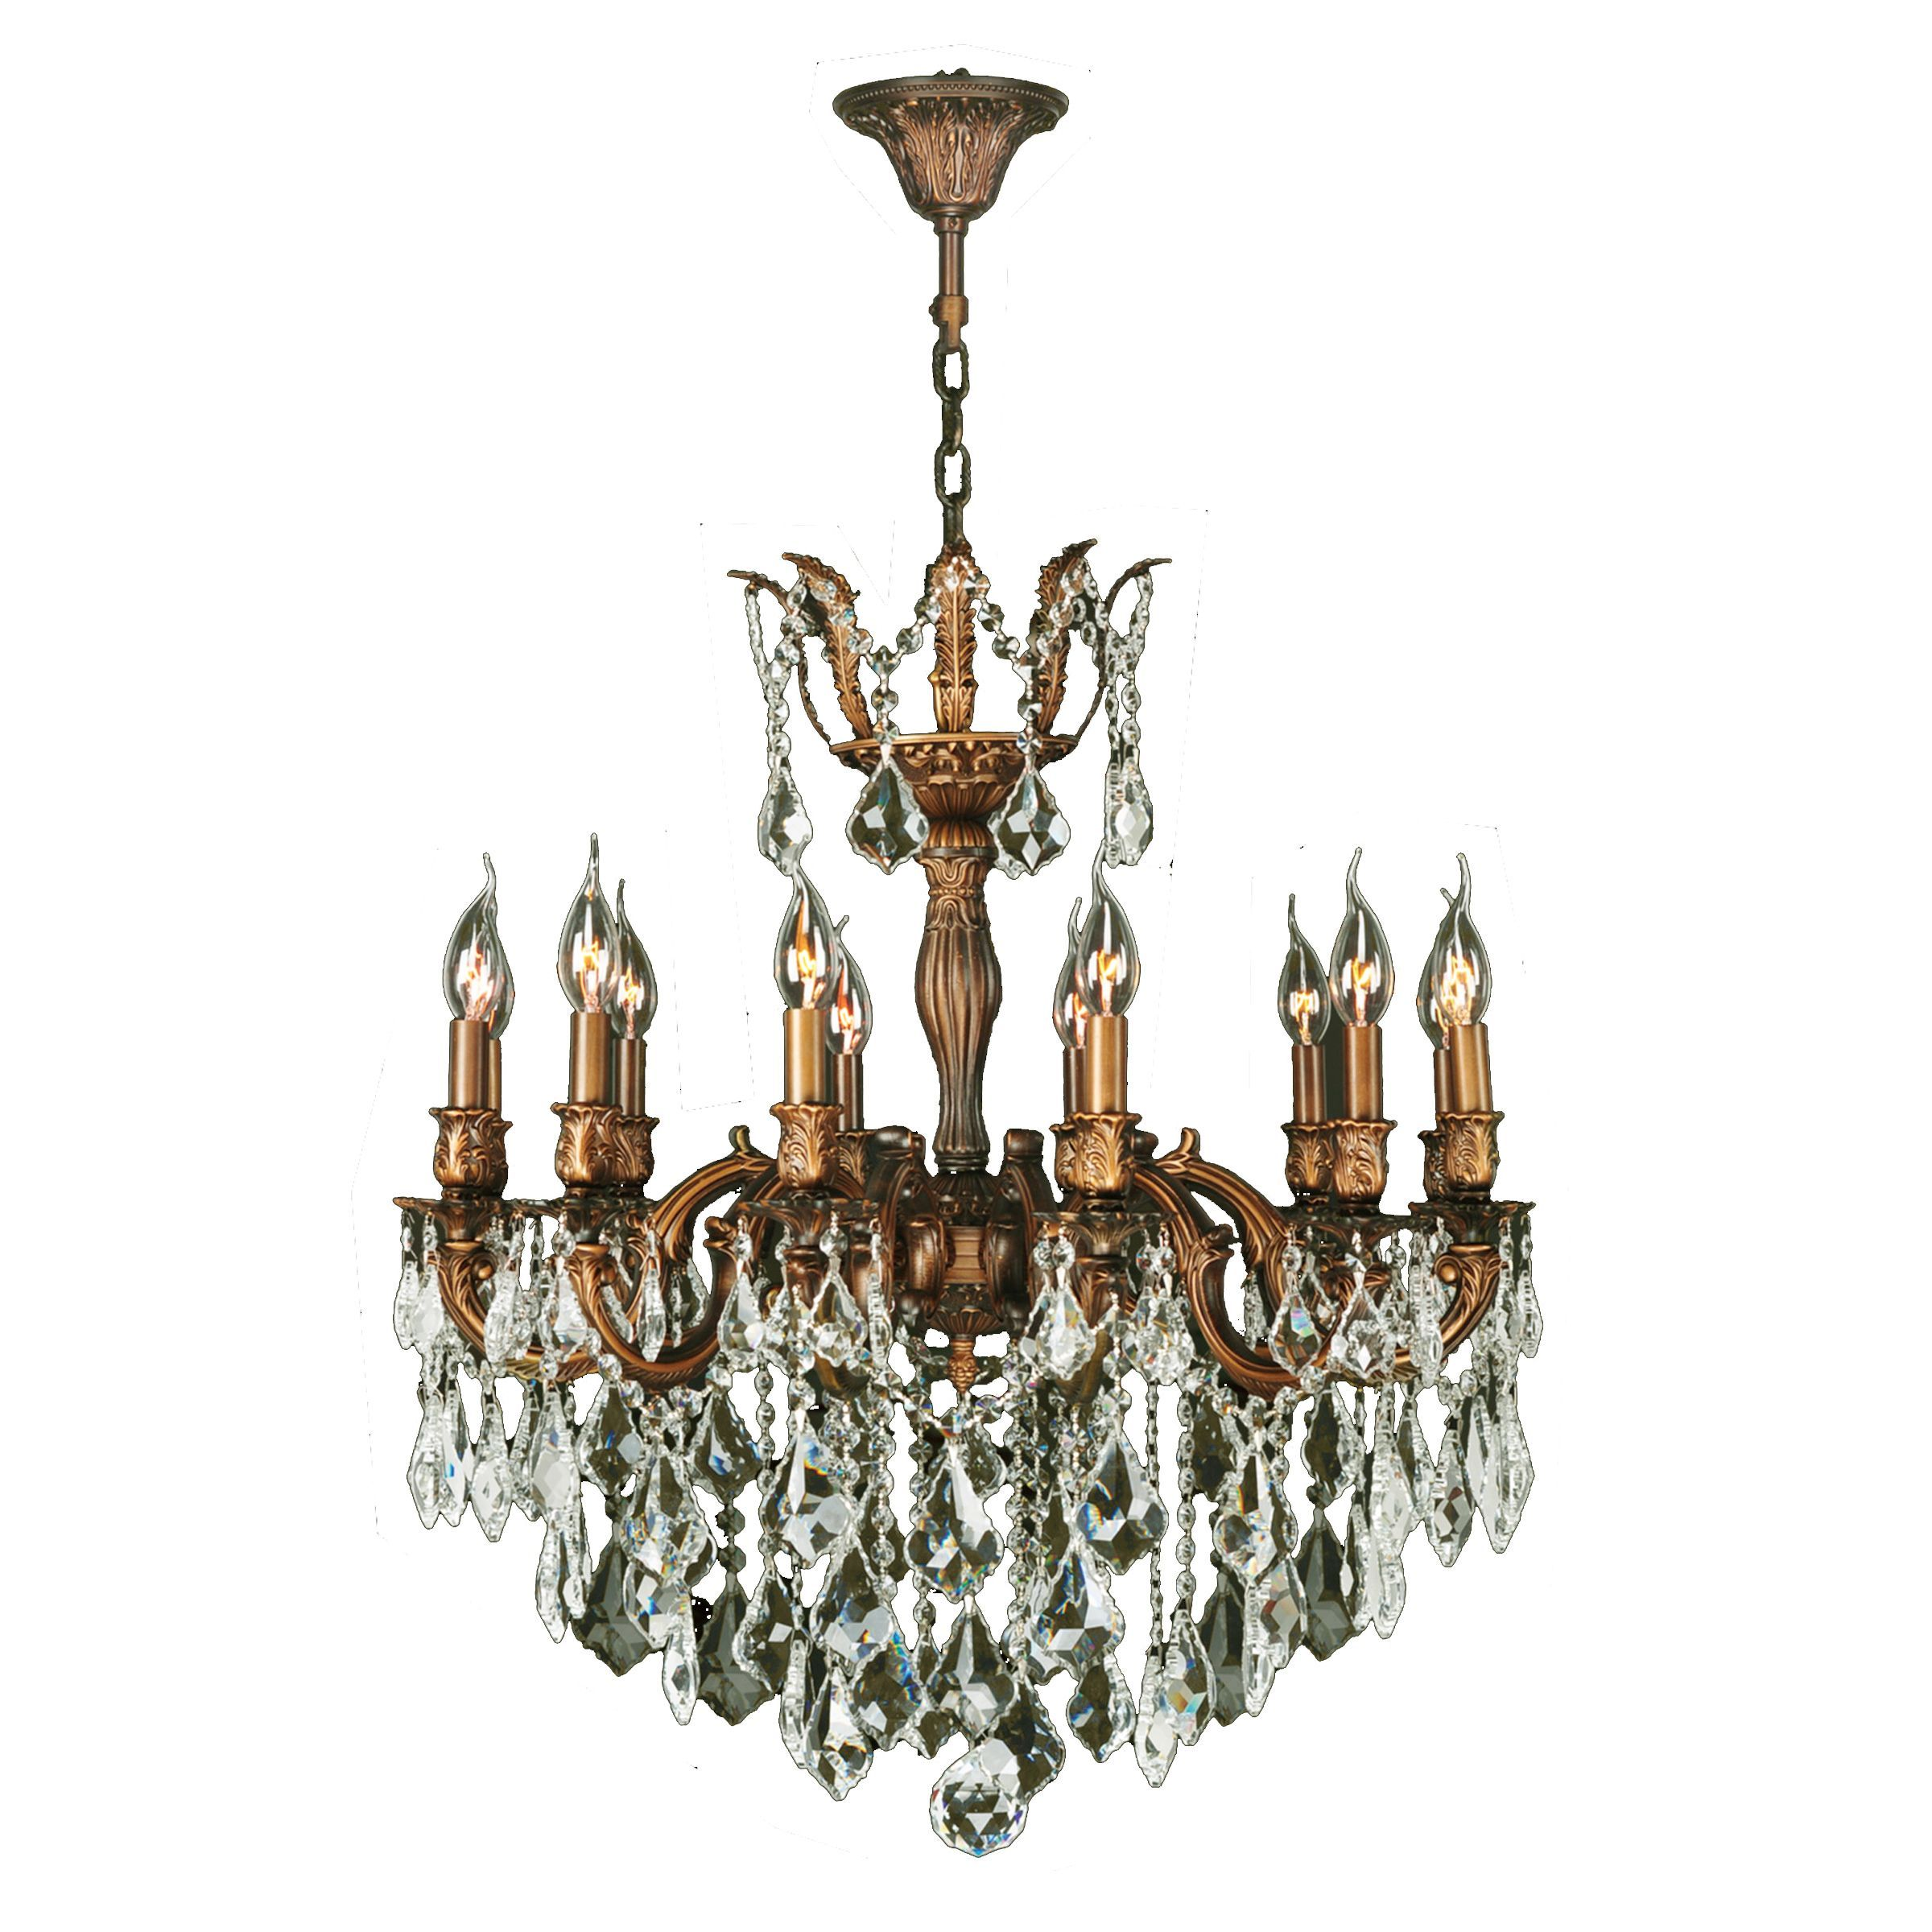 French imperial collection 12 light french gold finish and clear french imperial collection 12 light french gold finish and clear crystal traditional chandelier large x lights chandelier arubaitofo Gallery